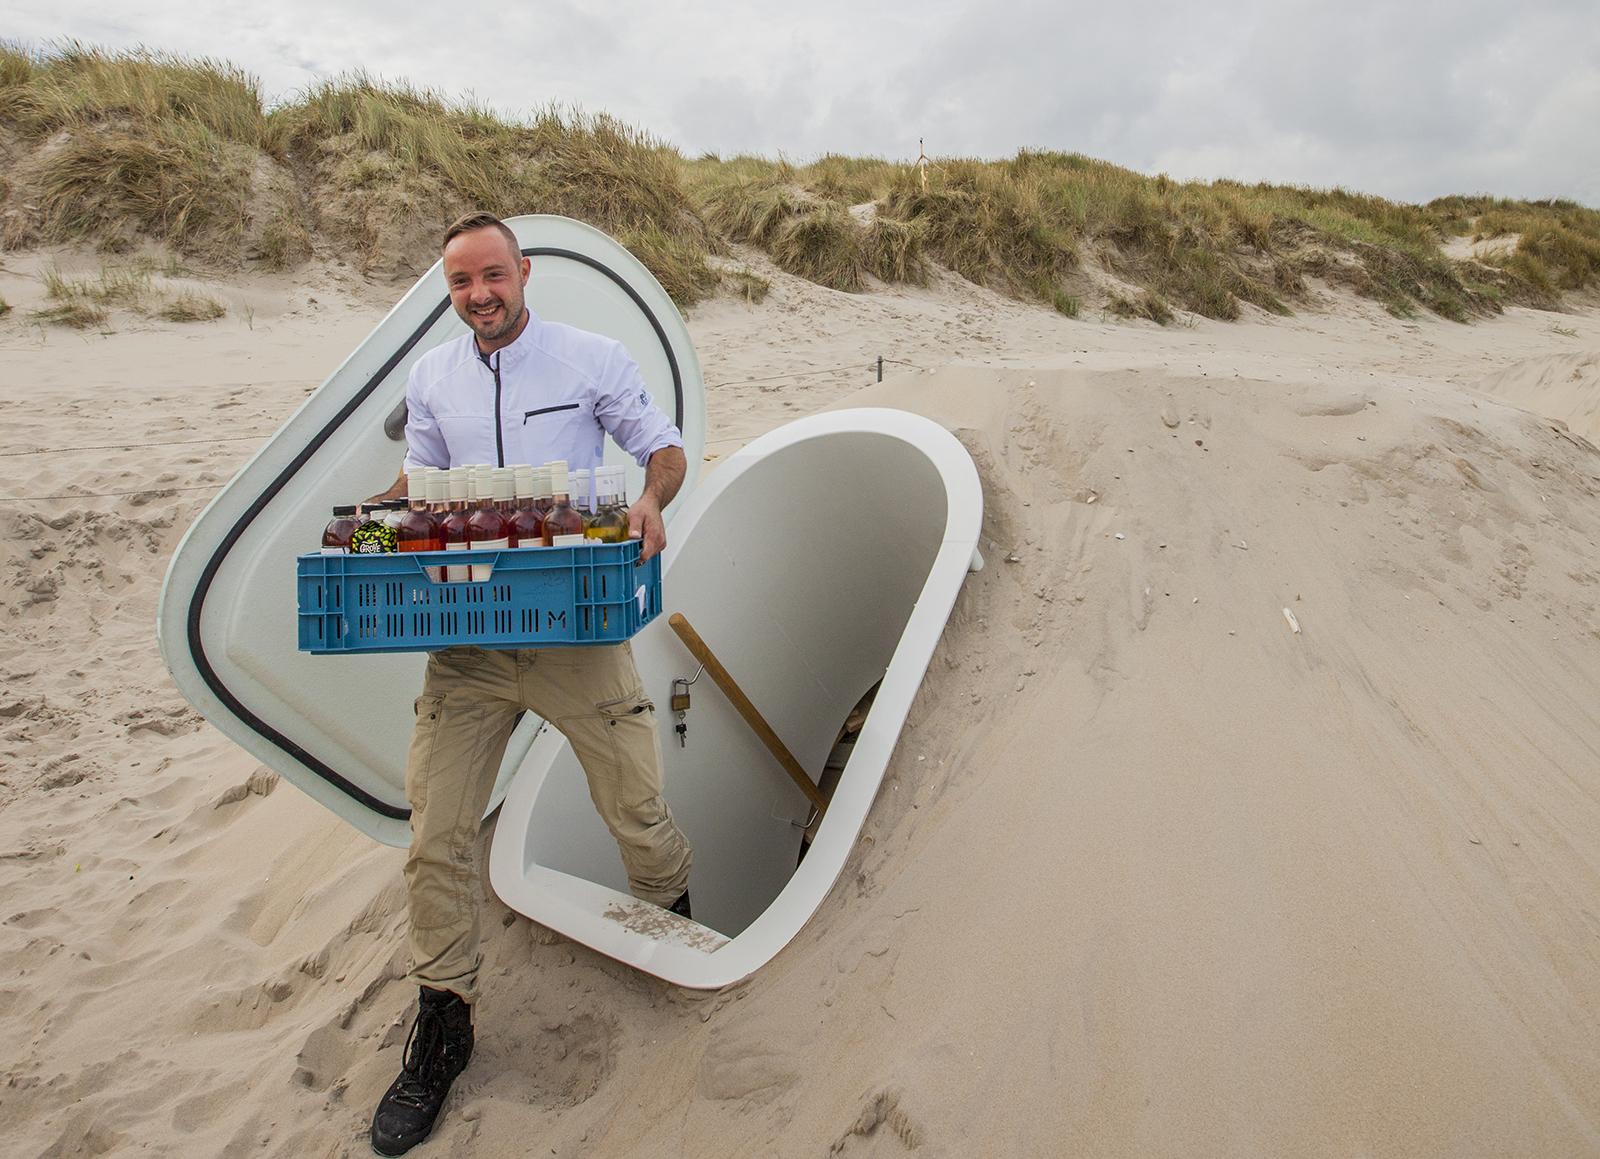 (Nederlands) De Groundfridge gaat viral